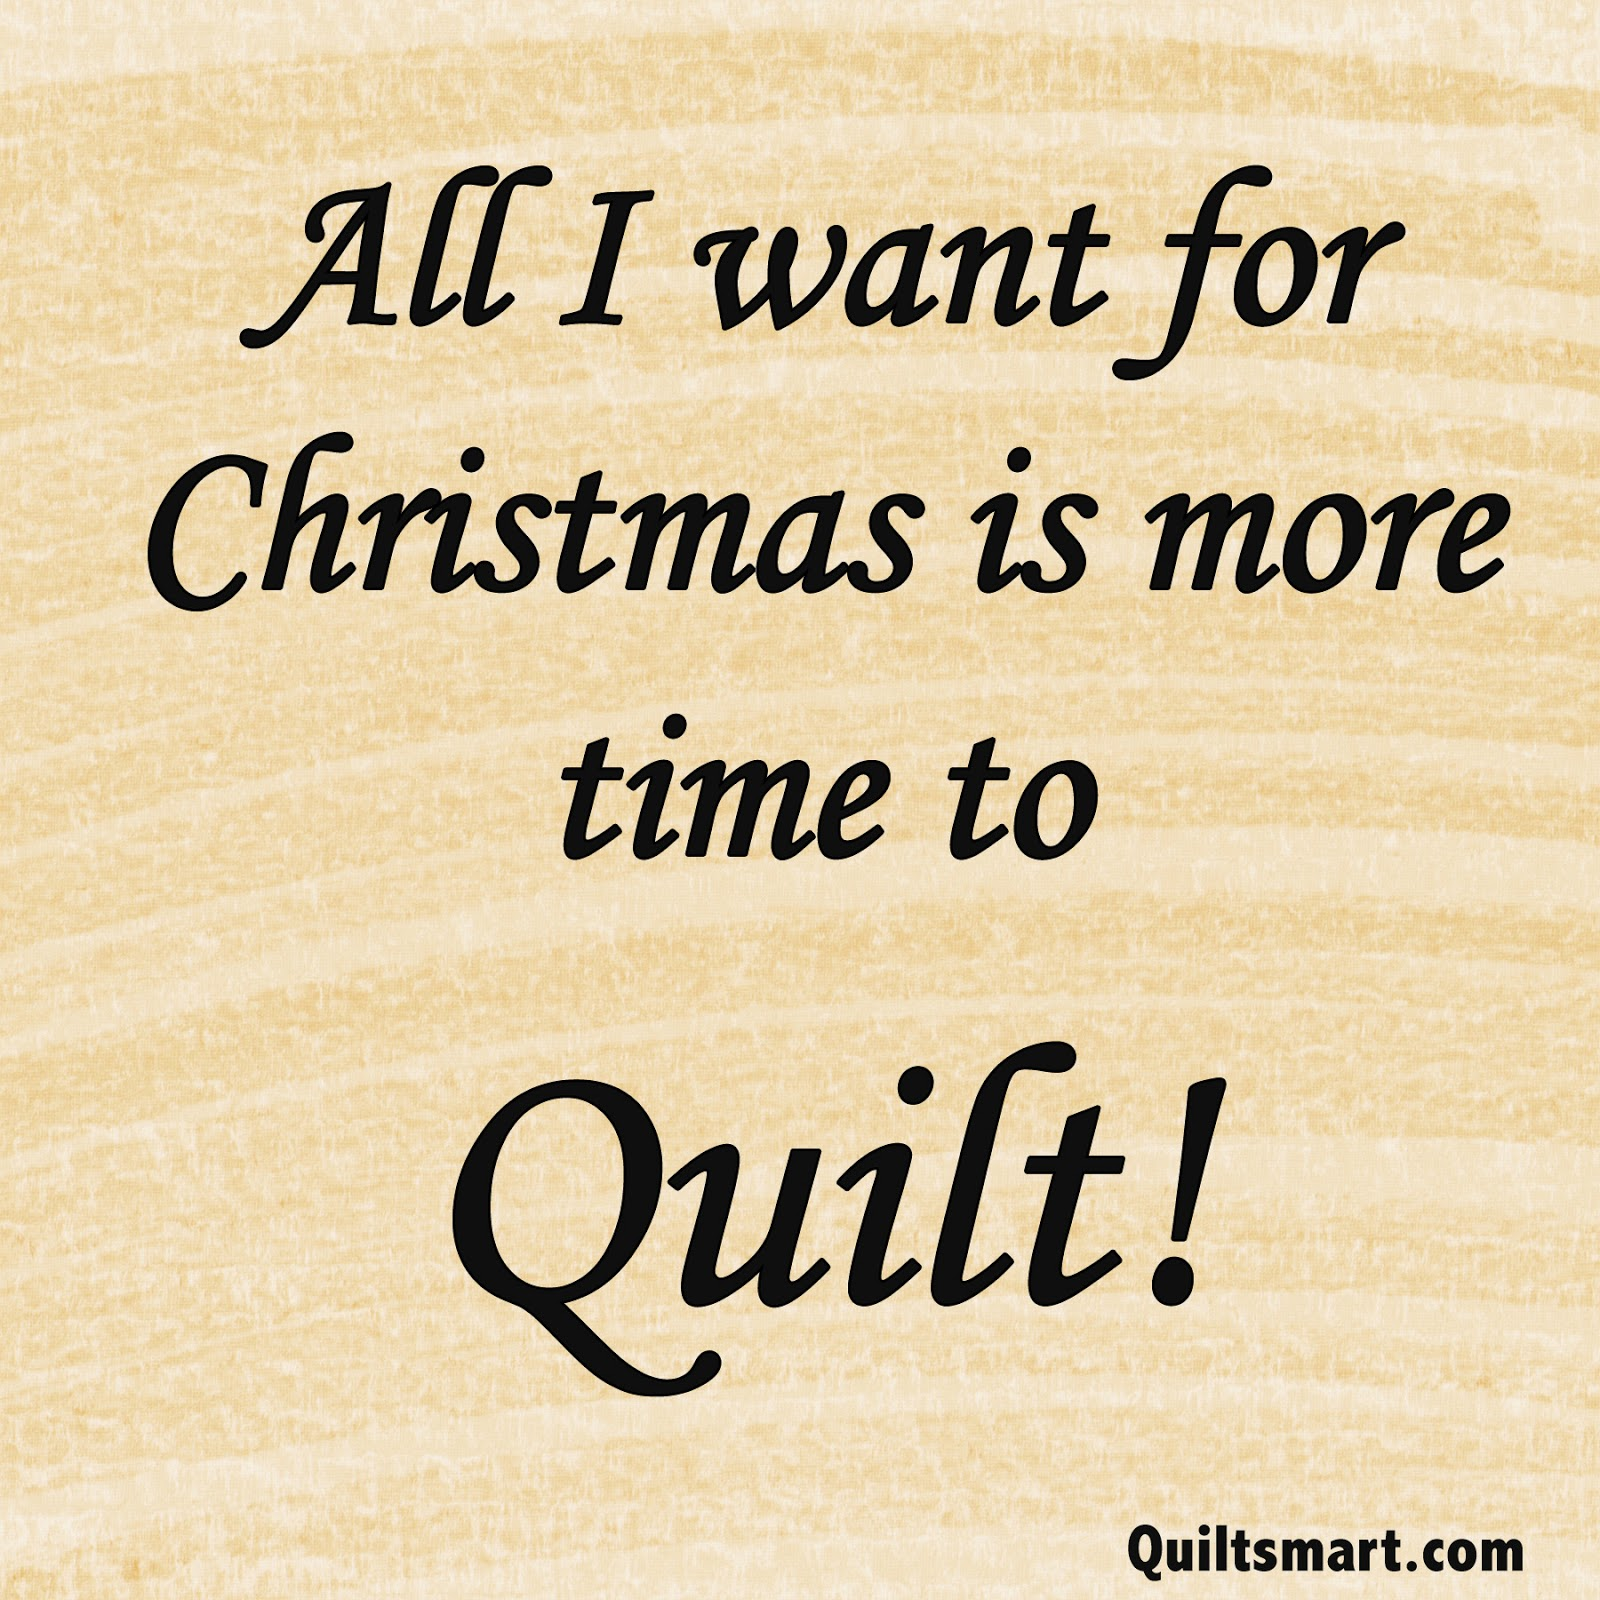 All I want for Christmas is more time to Quilt